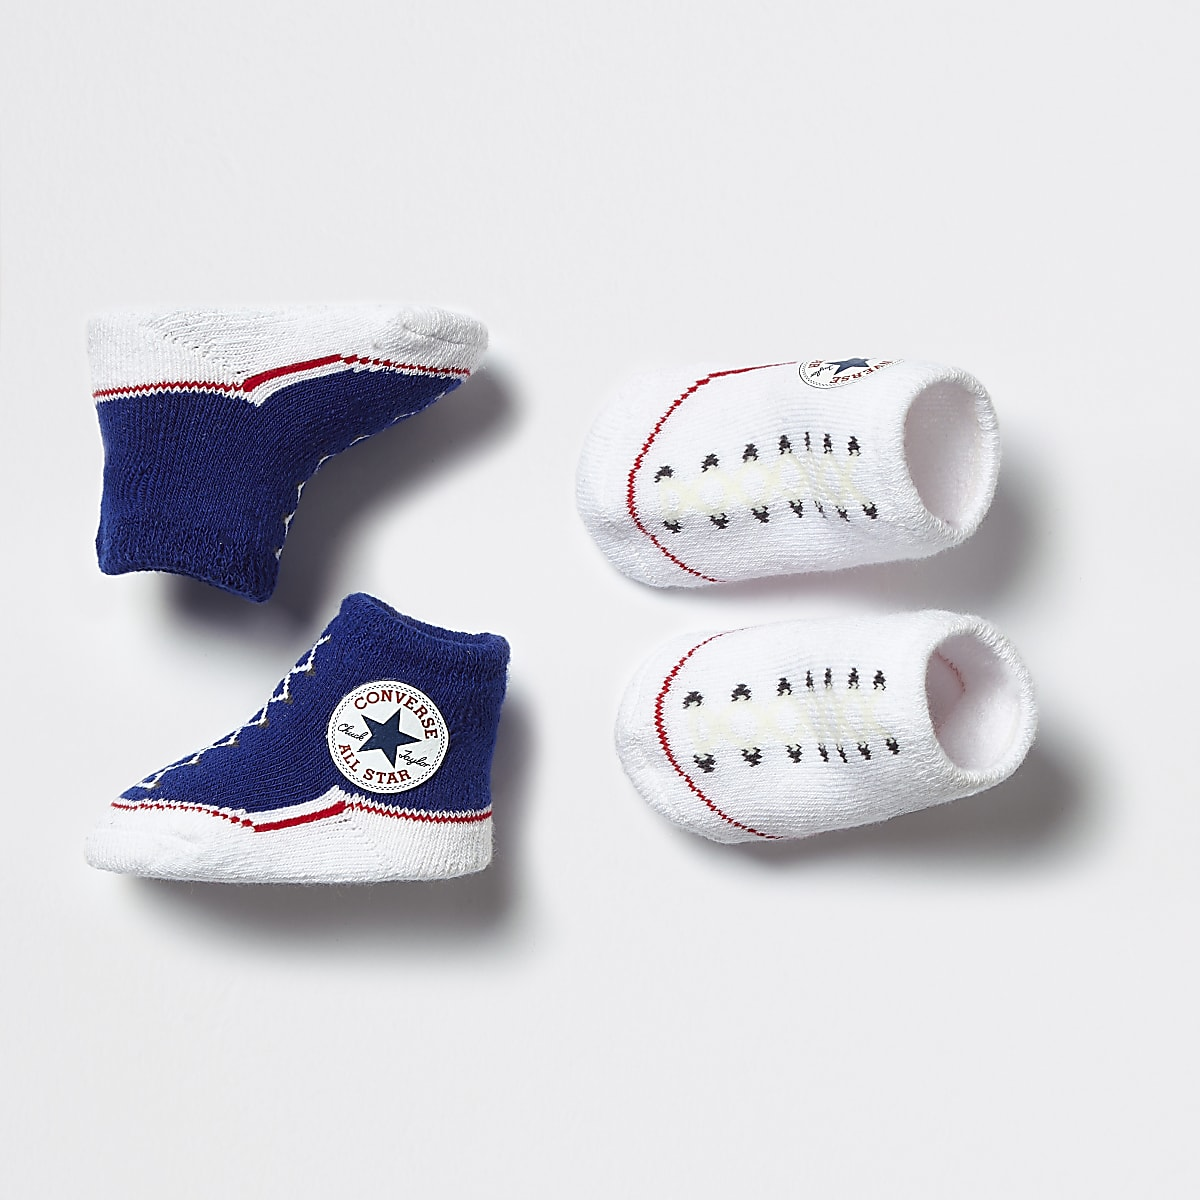 Baby Converse All Star navy booties